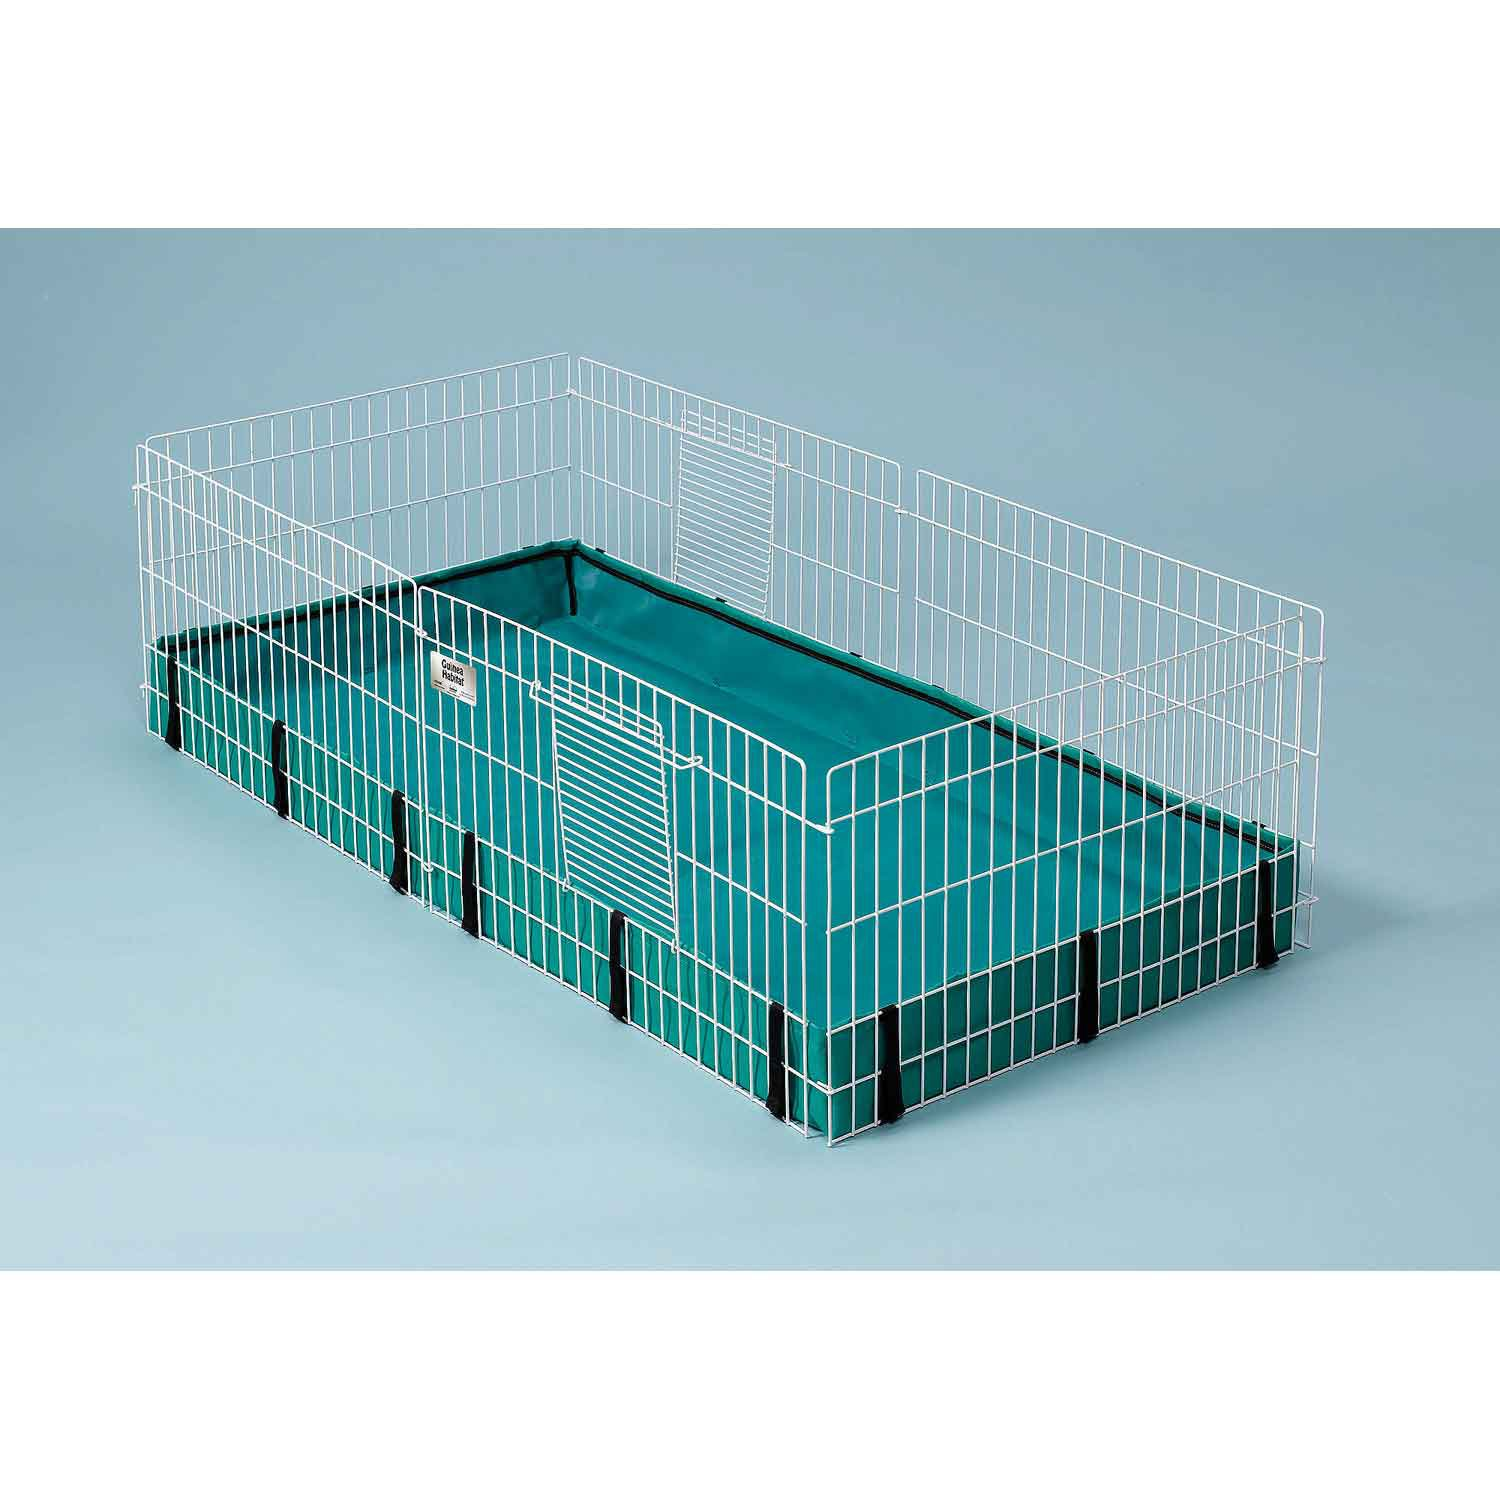 Heavyweight wire dog crates feature two doors Easy-to-clean, side-out plastic pan These collapsible dog crates are assembled and easy to set up.